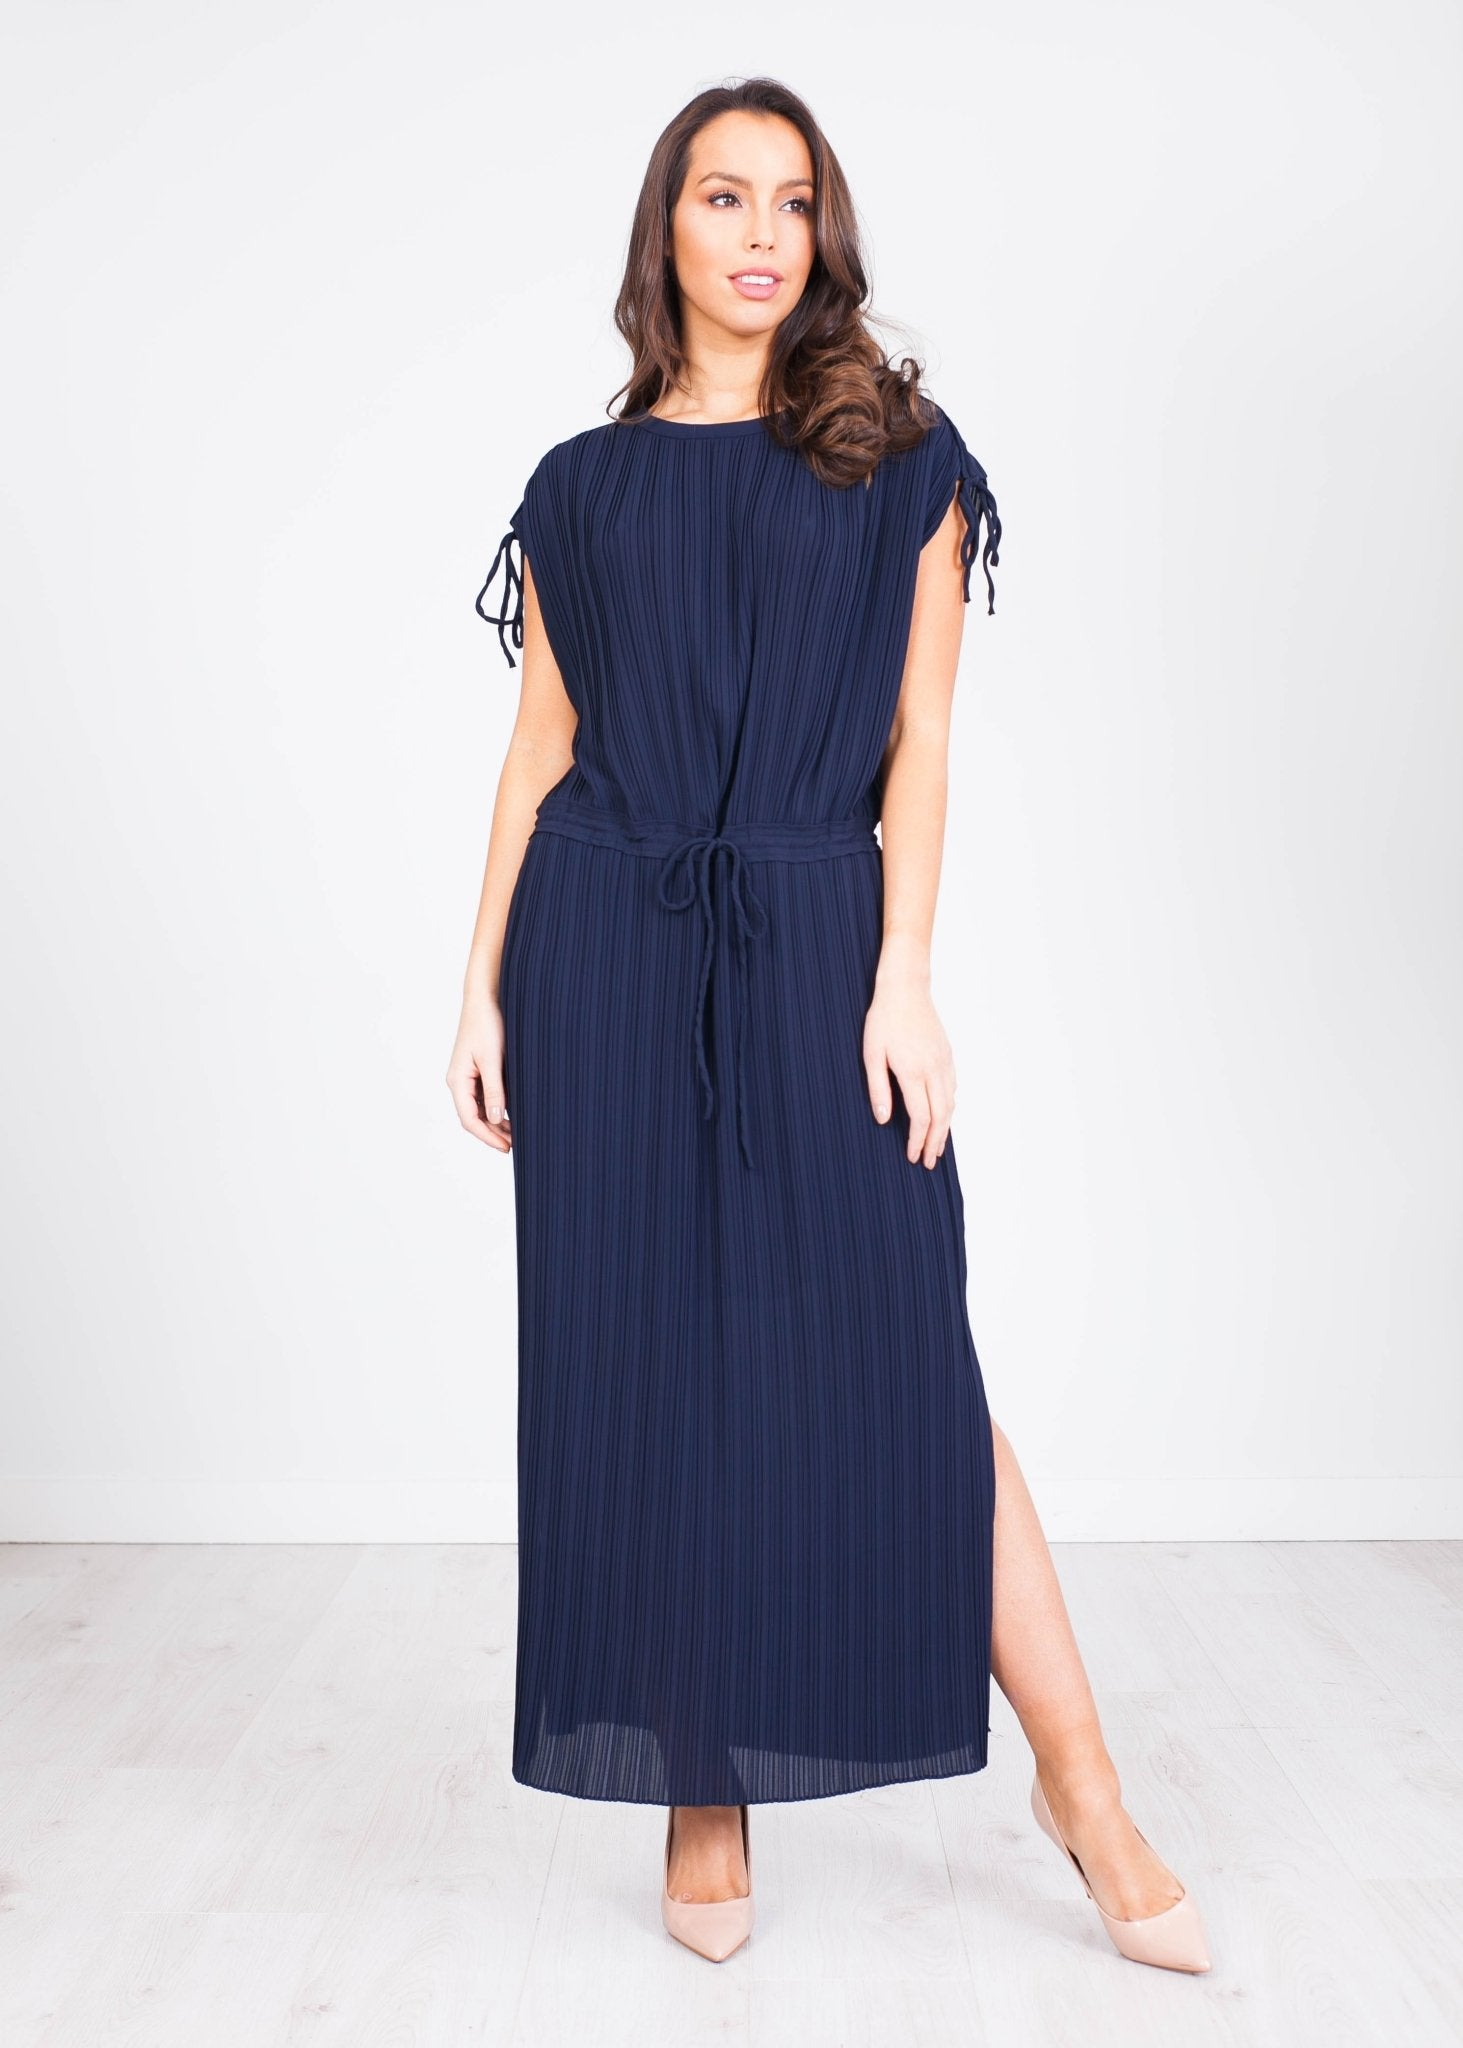 Sophia Navy Pleated Dress - The Walk in Wardrobe